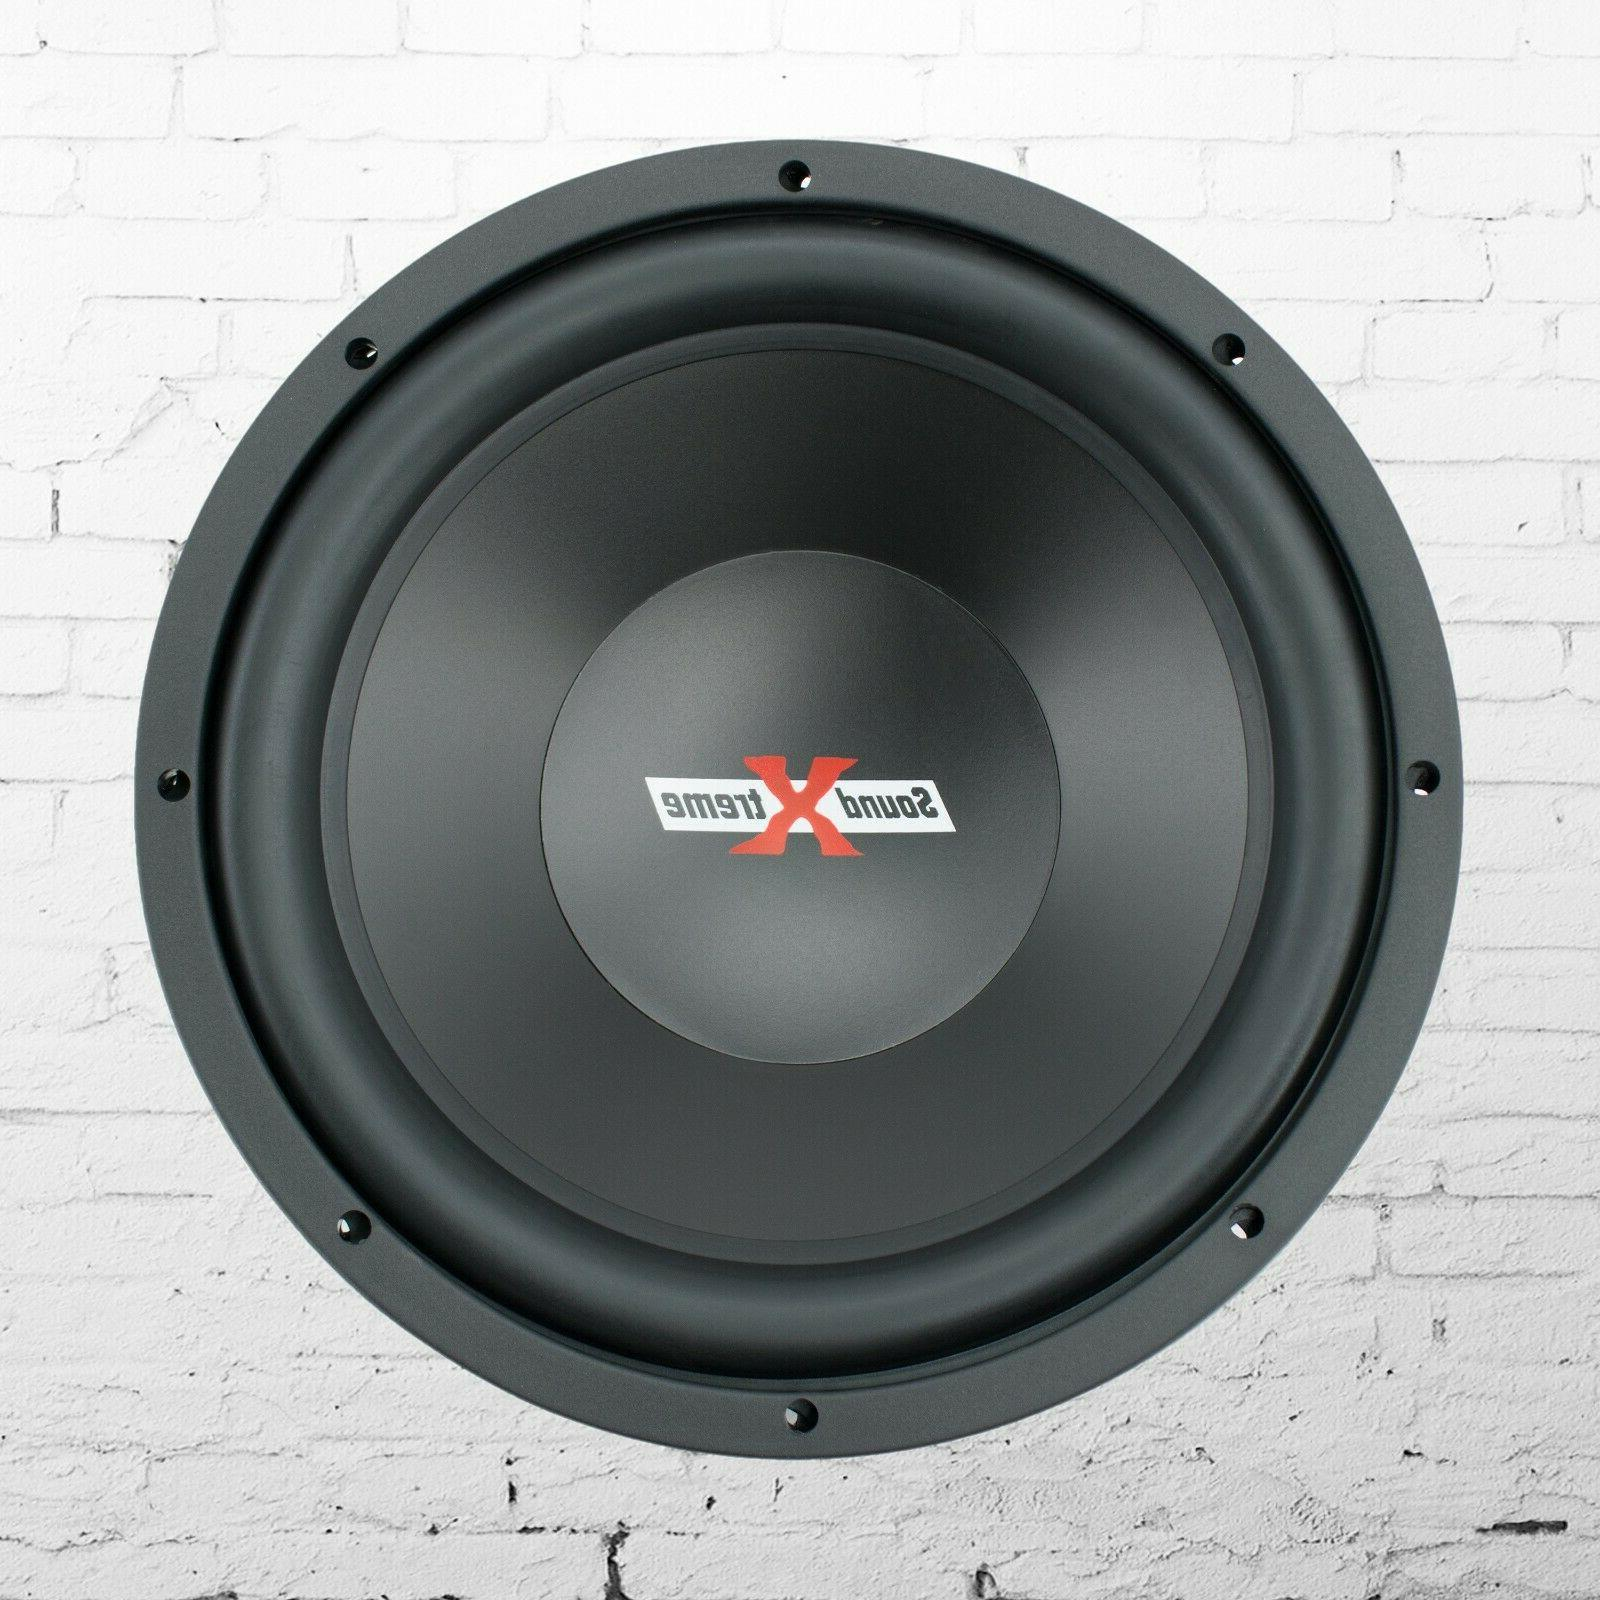 New SoundXtreme 12 2000 Car Subwoofer with DVC - 1